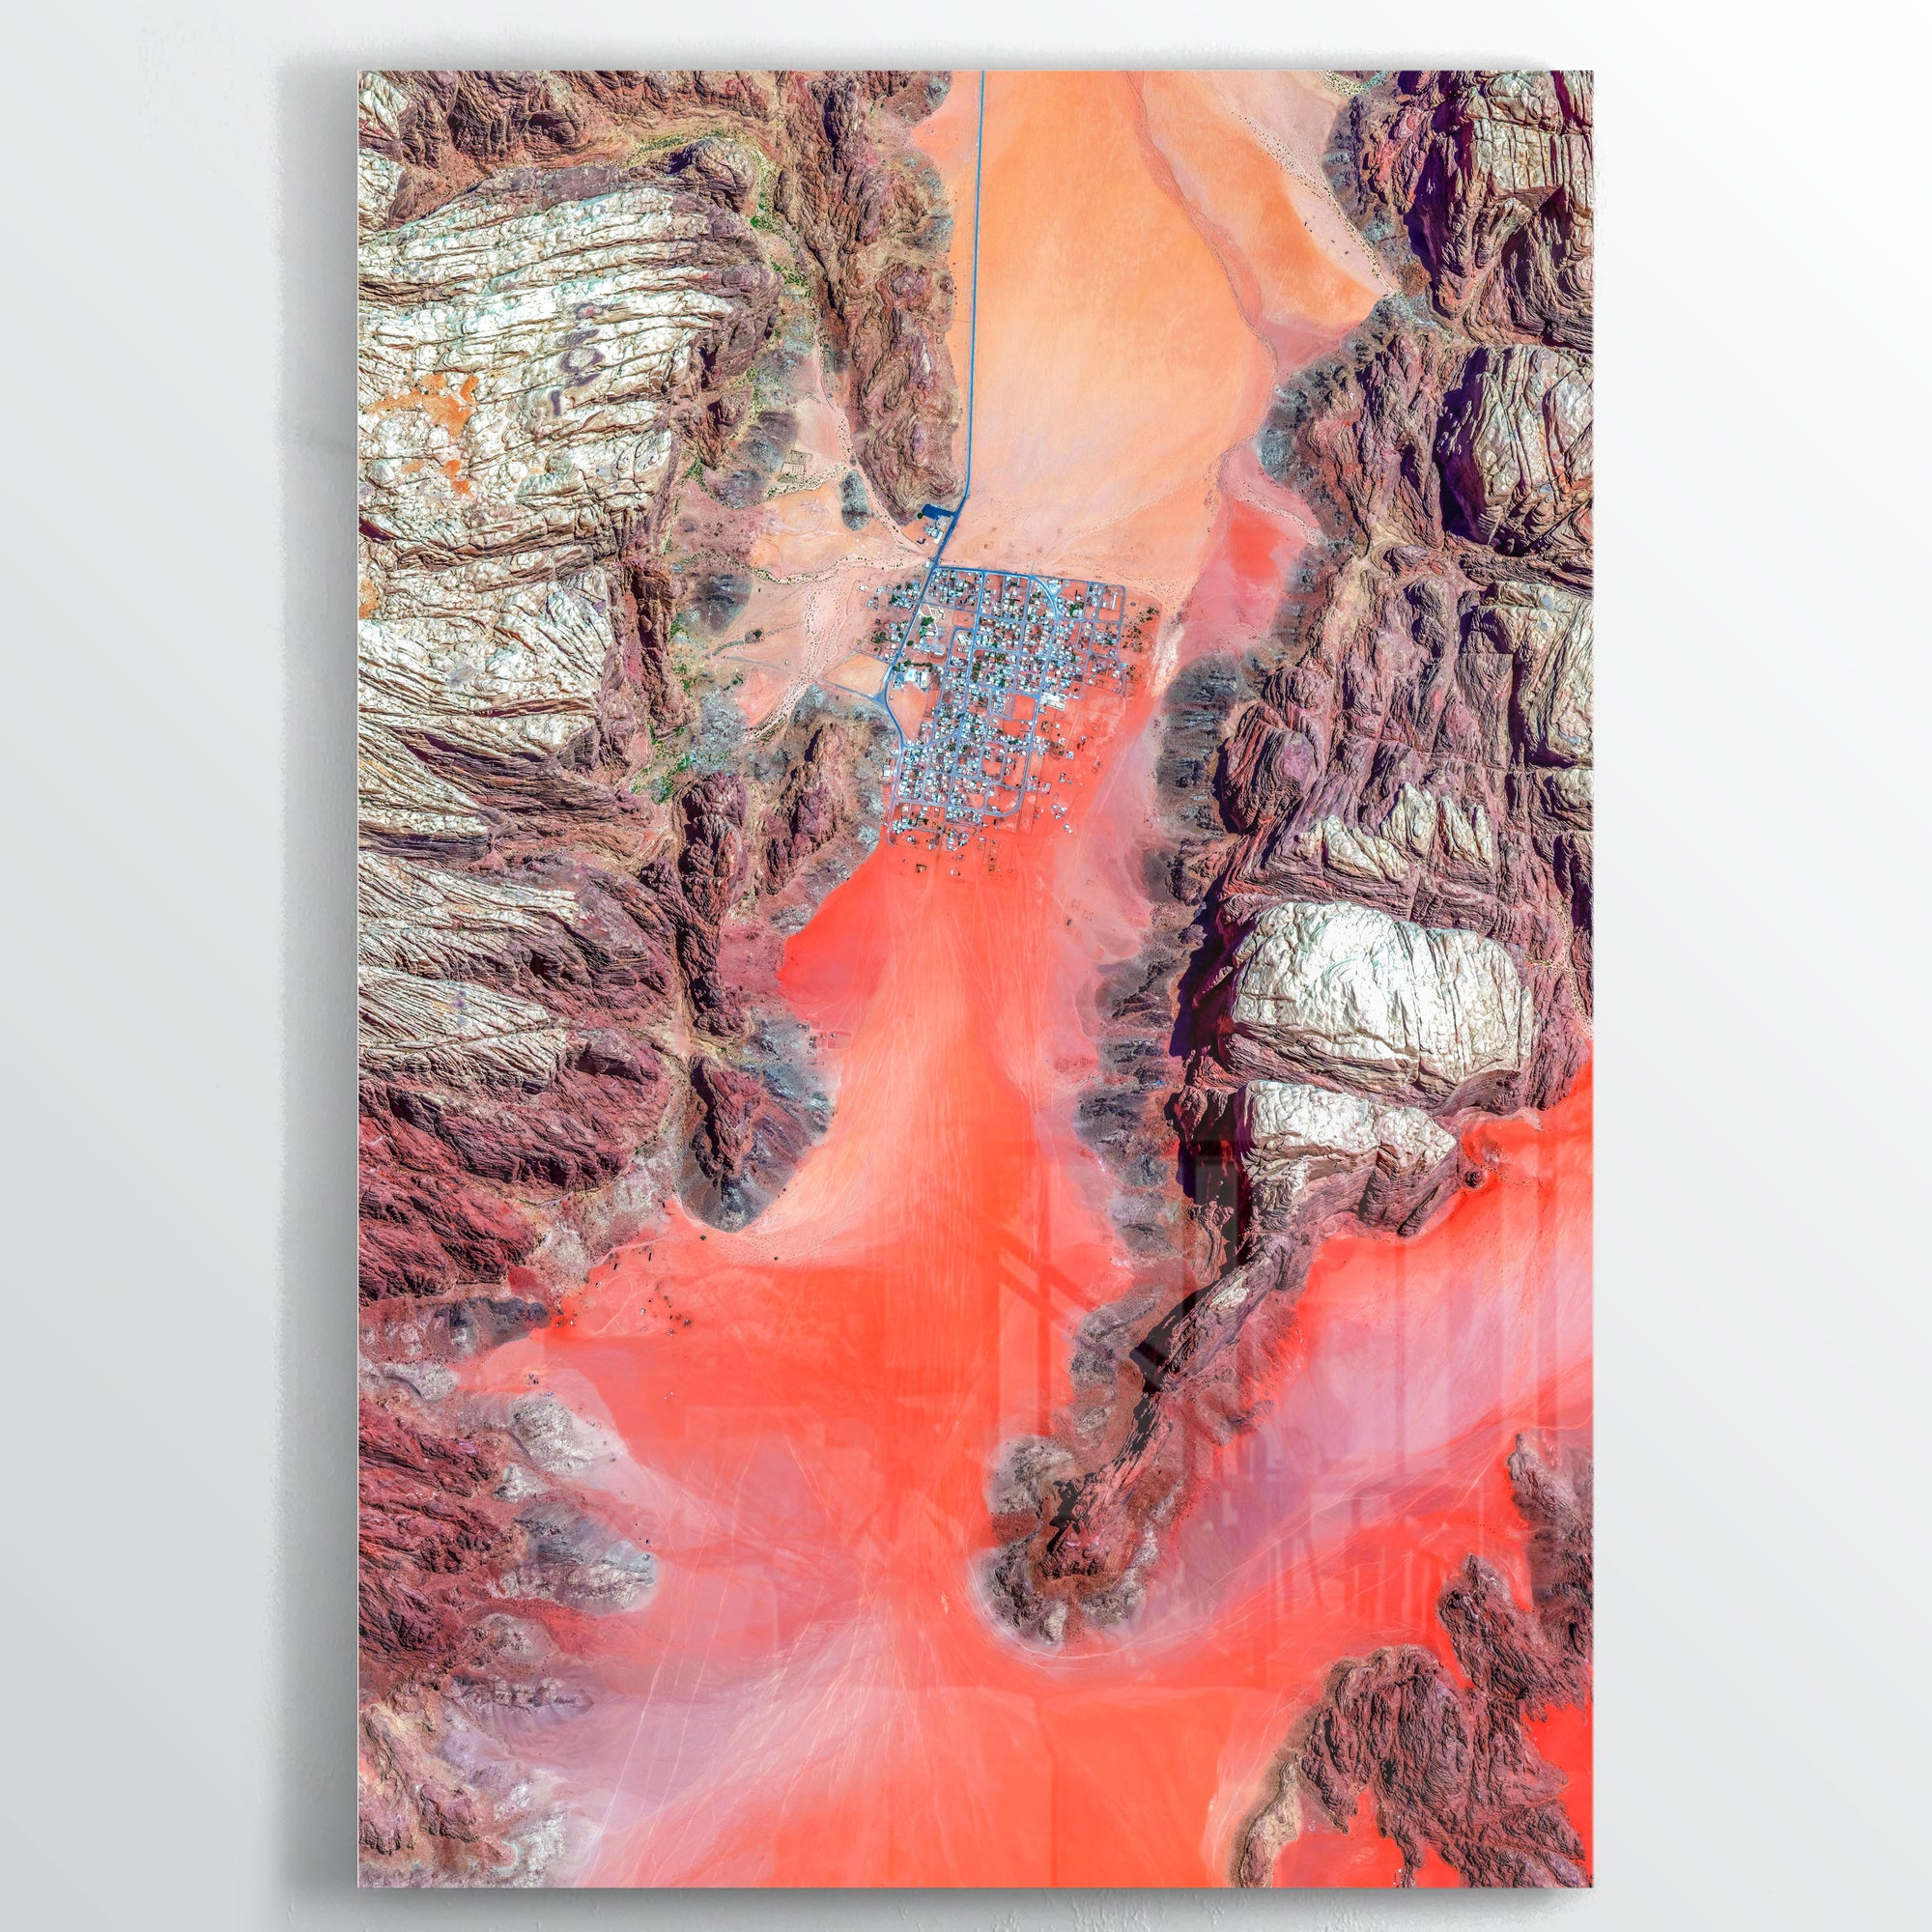 8932 Earth Photography - Floating Acrylic Art - Point Two Design